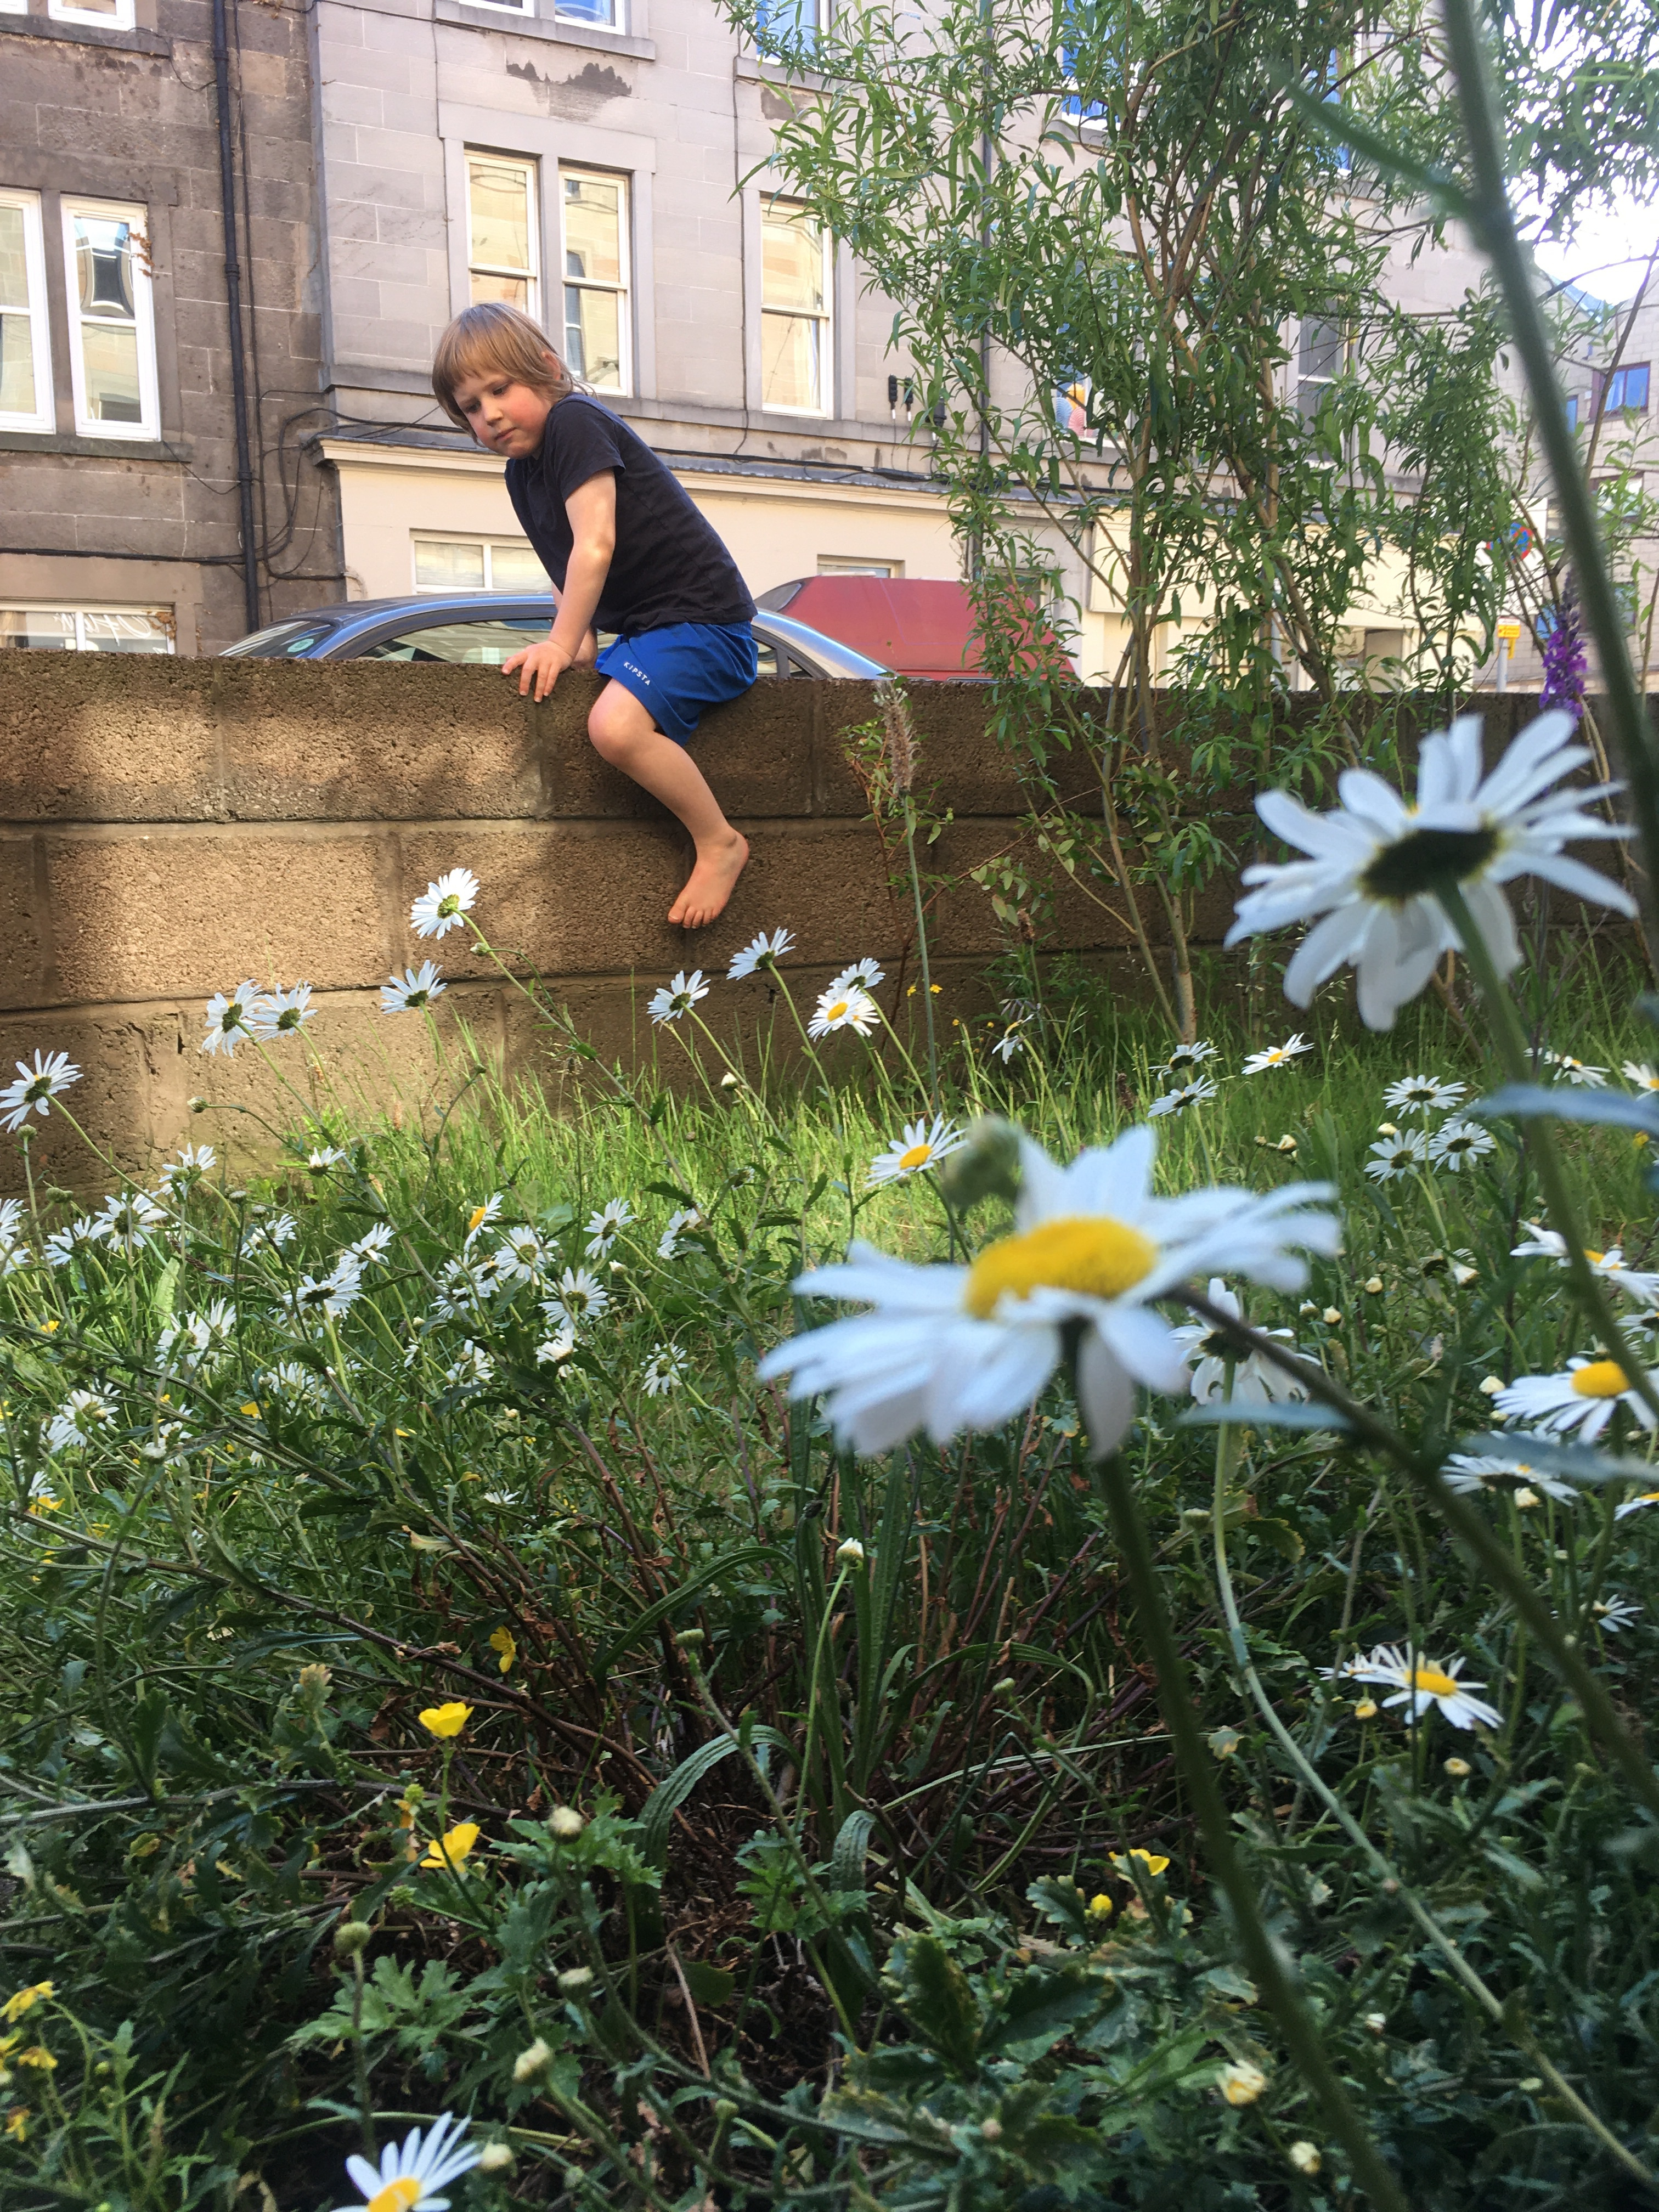 Boy sits on the fence, city background, daisies in the foreground